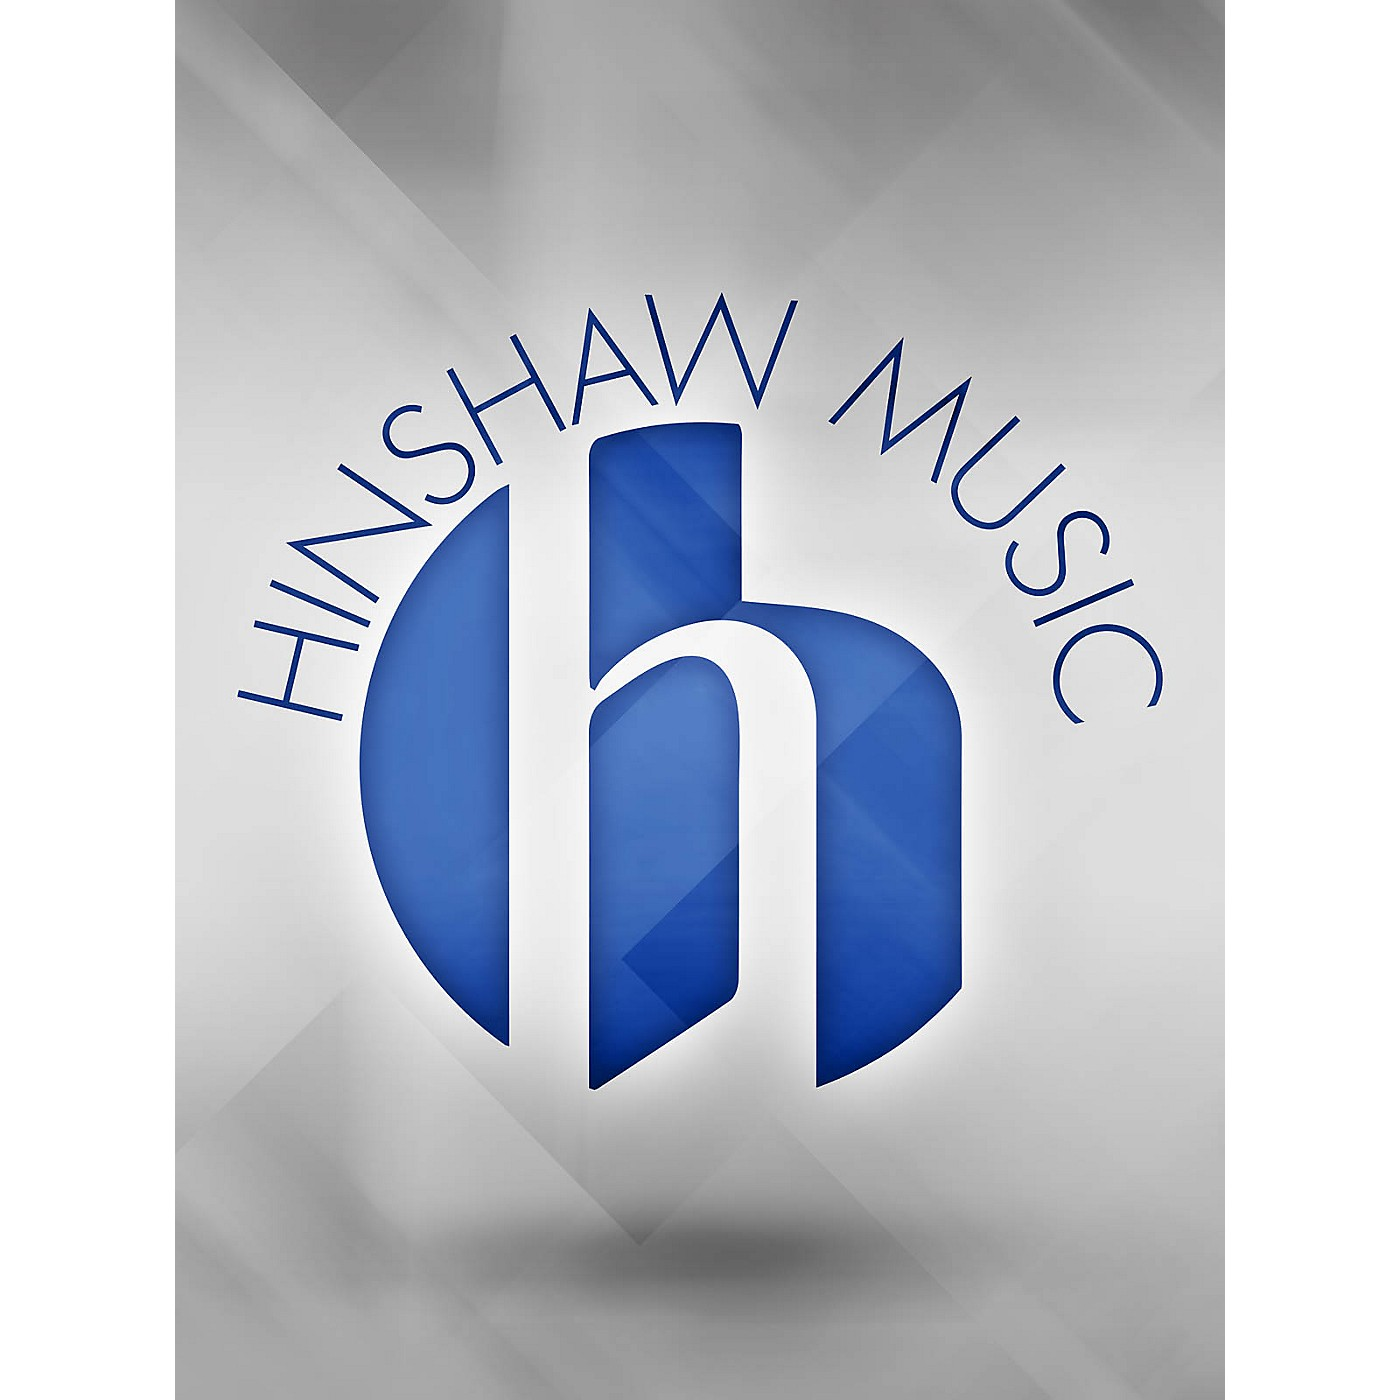 Hinshaw Music Ceremonial Hymns and Fanfares SATB Arranged by John Hotchkis thumbnail